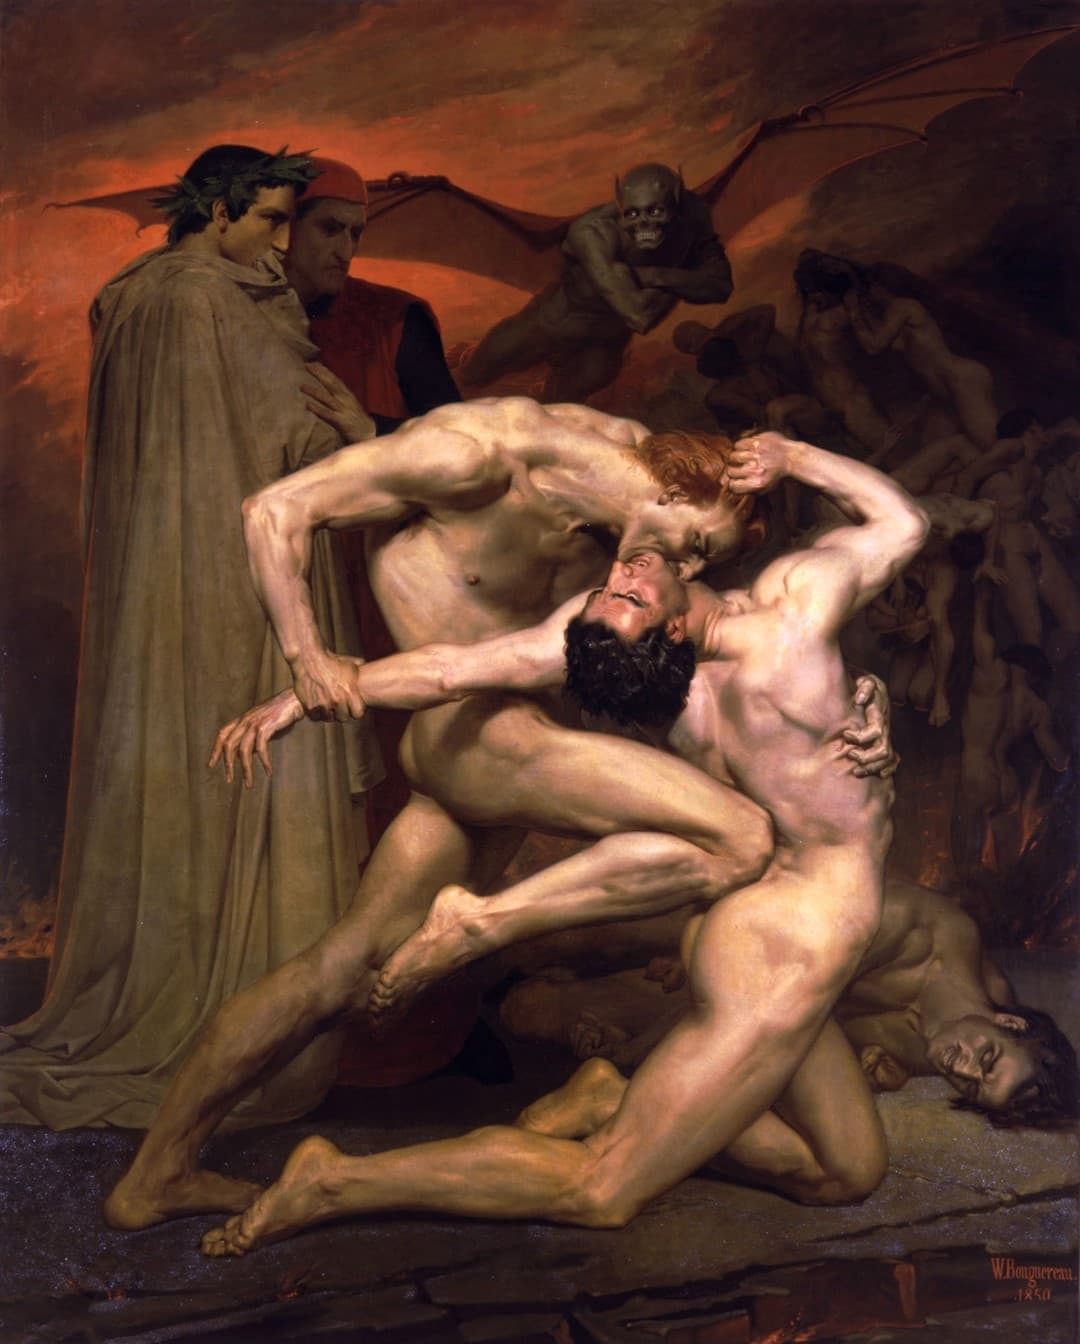 de William Adolphe Bouguereau dante y virgilio en el infierno